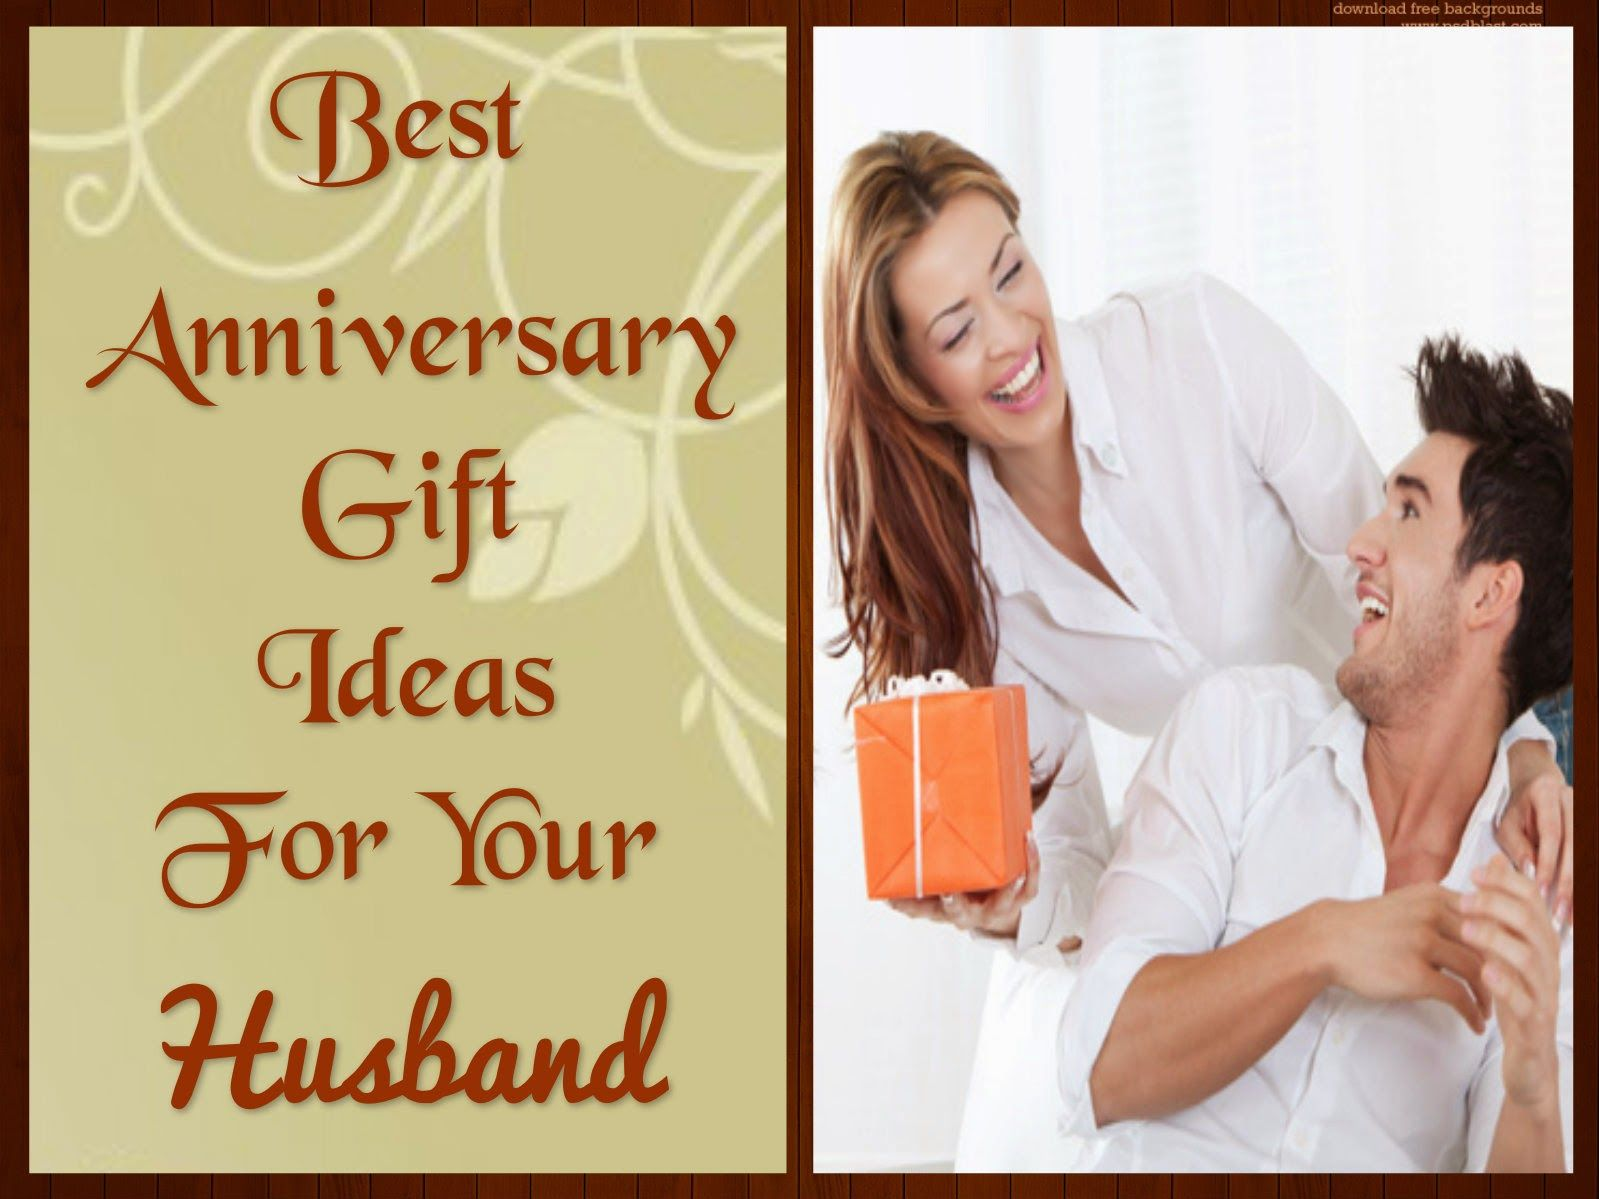 Wedding Anniversary Gifts Best Gift Ideas For Your Husband